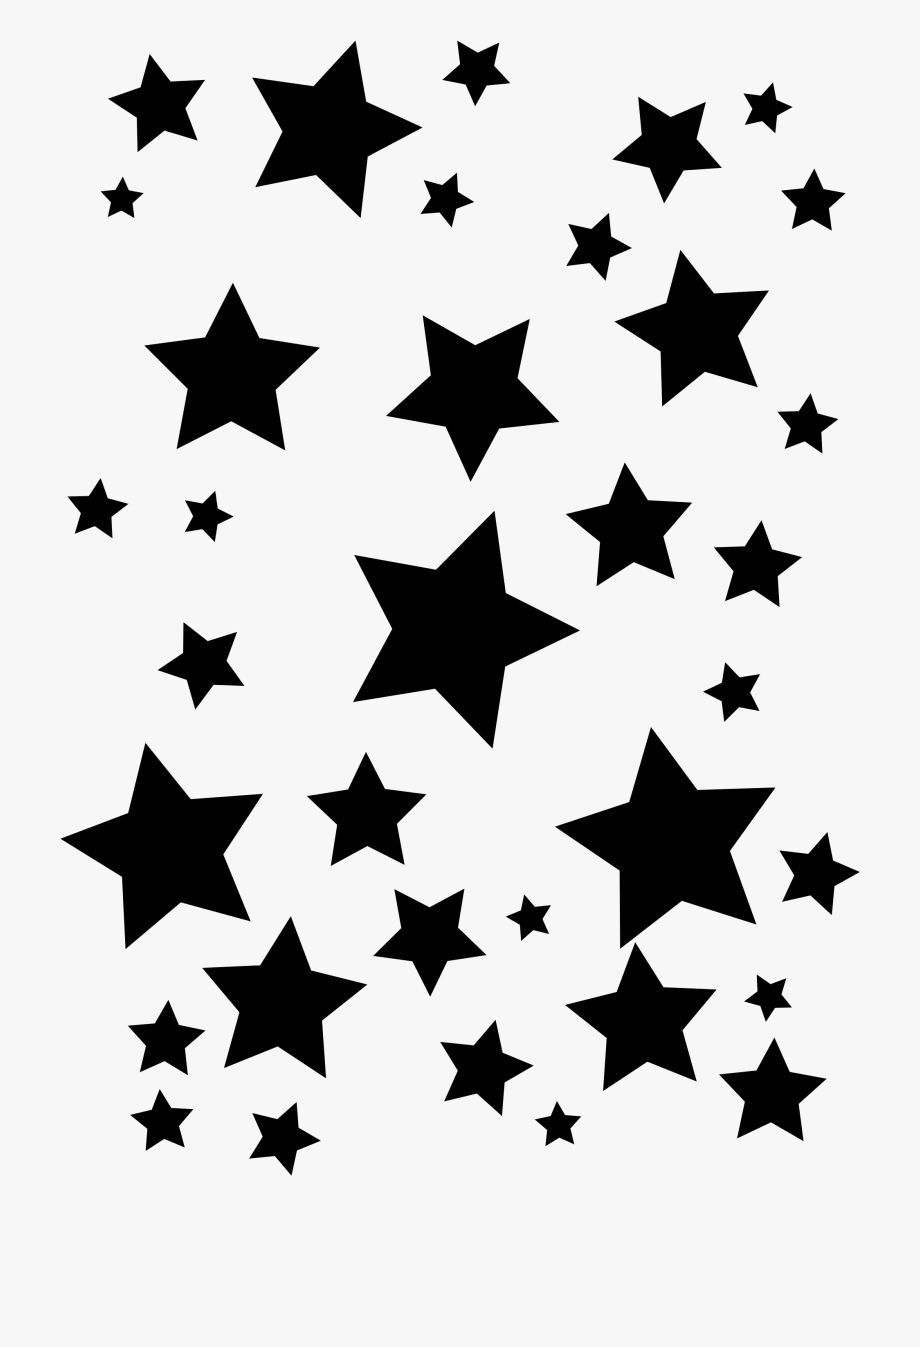 Black stars transparent background free clipart jpg free Royalty Free Library Cluster Of Stars Clipart Collection - Black ... jpg free